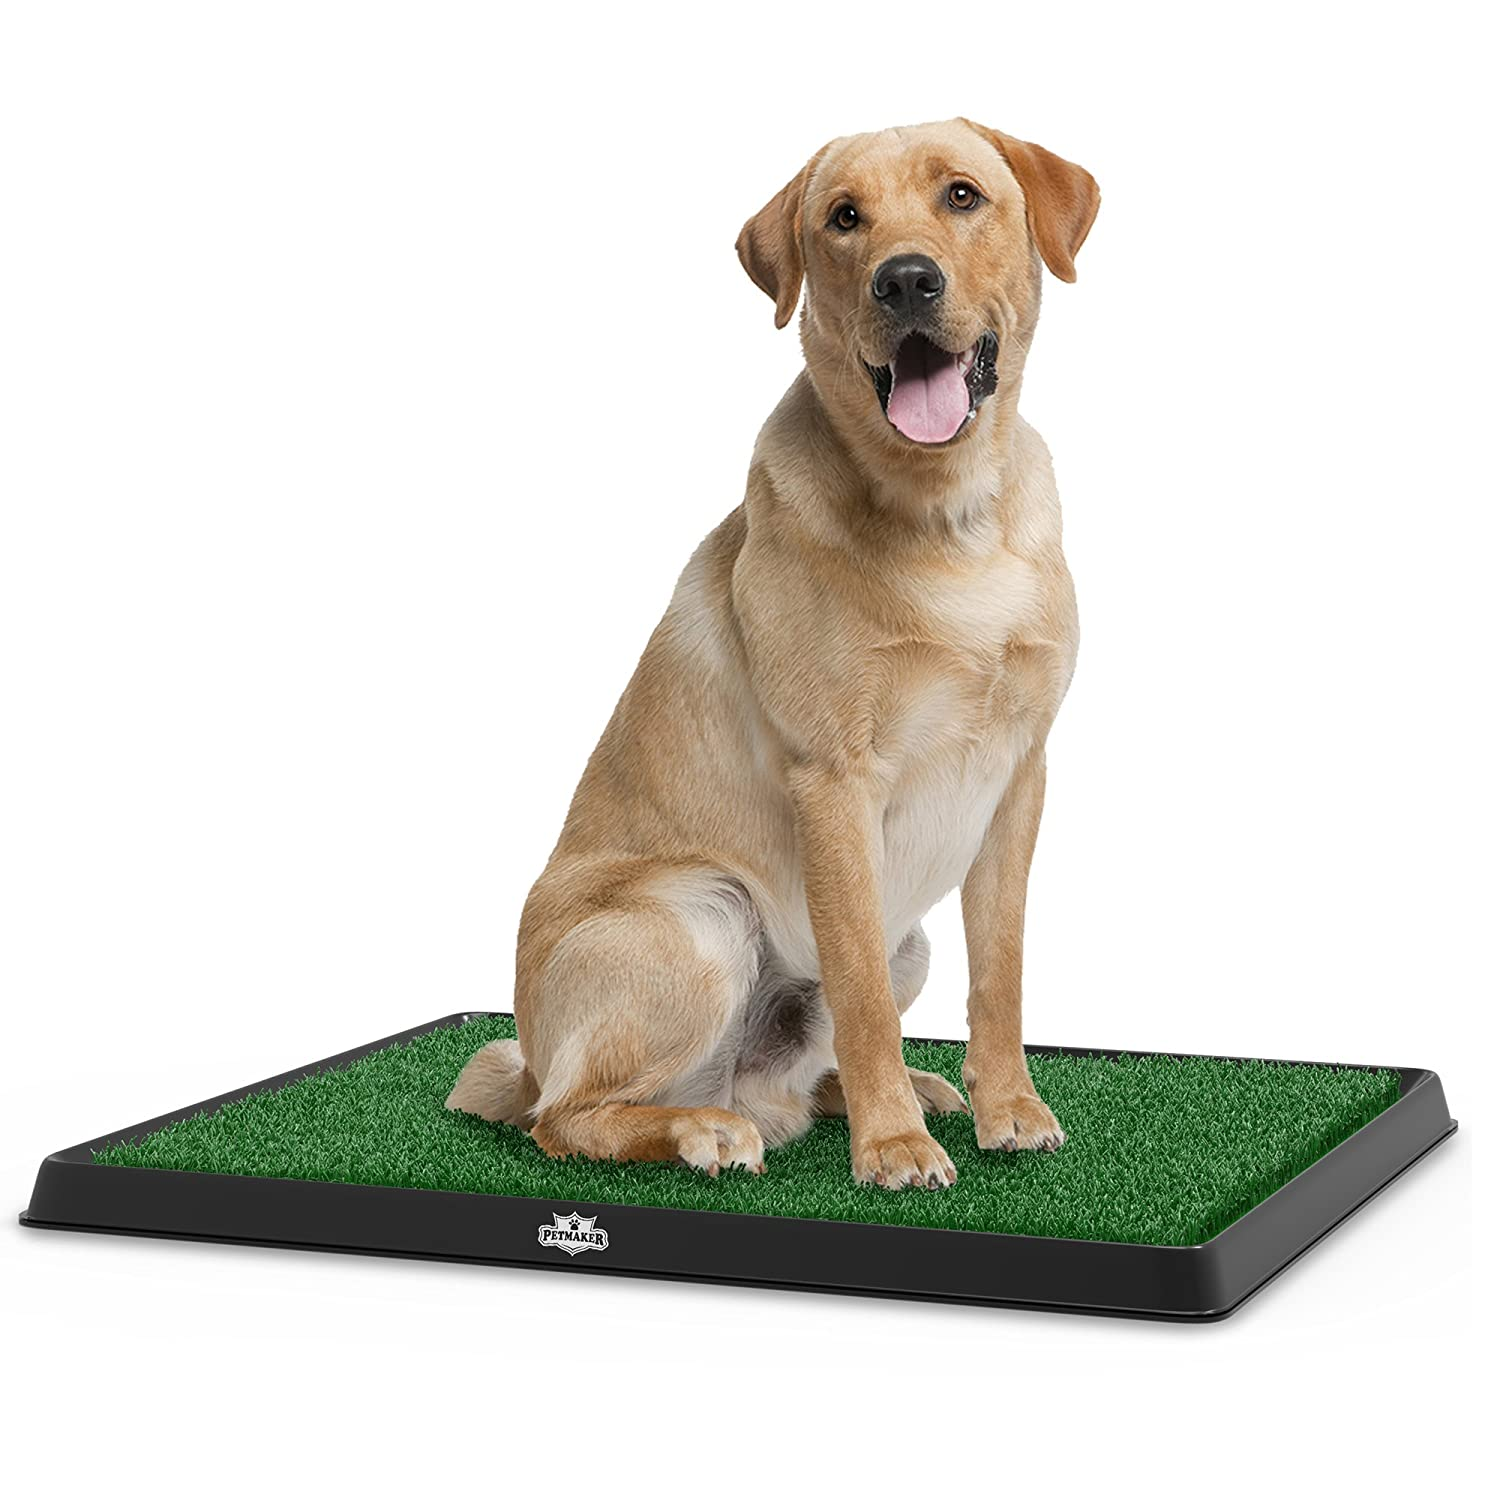 Artificial Grass Potty Training Mat